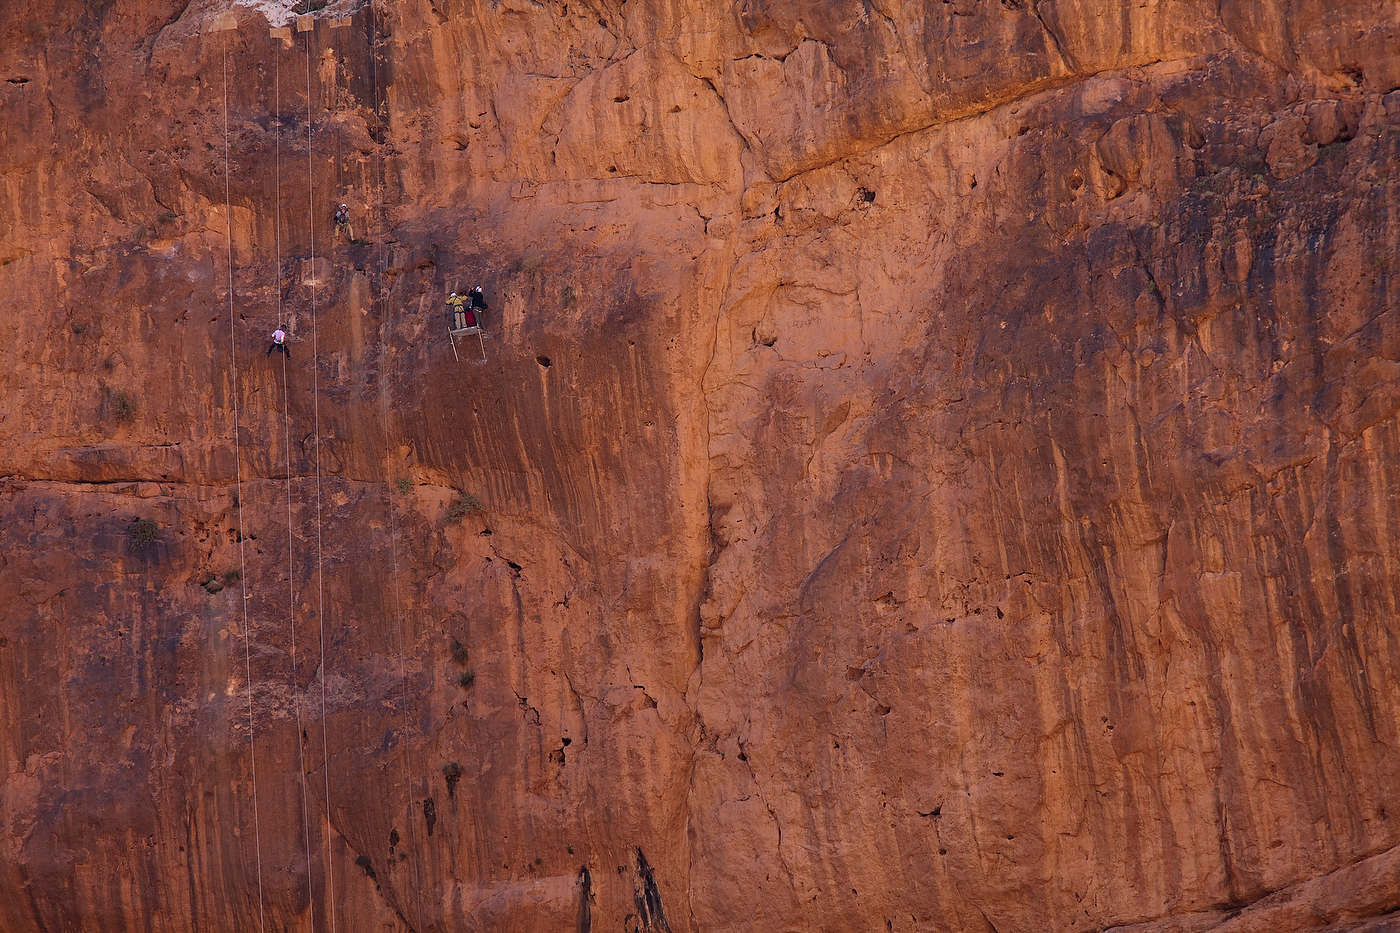 Gypsies' John Post rappels down a 300 feet cliff in the Dades Gorges.